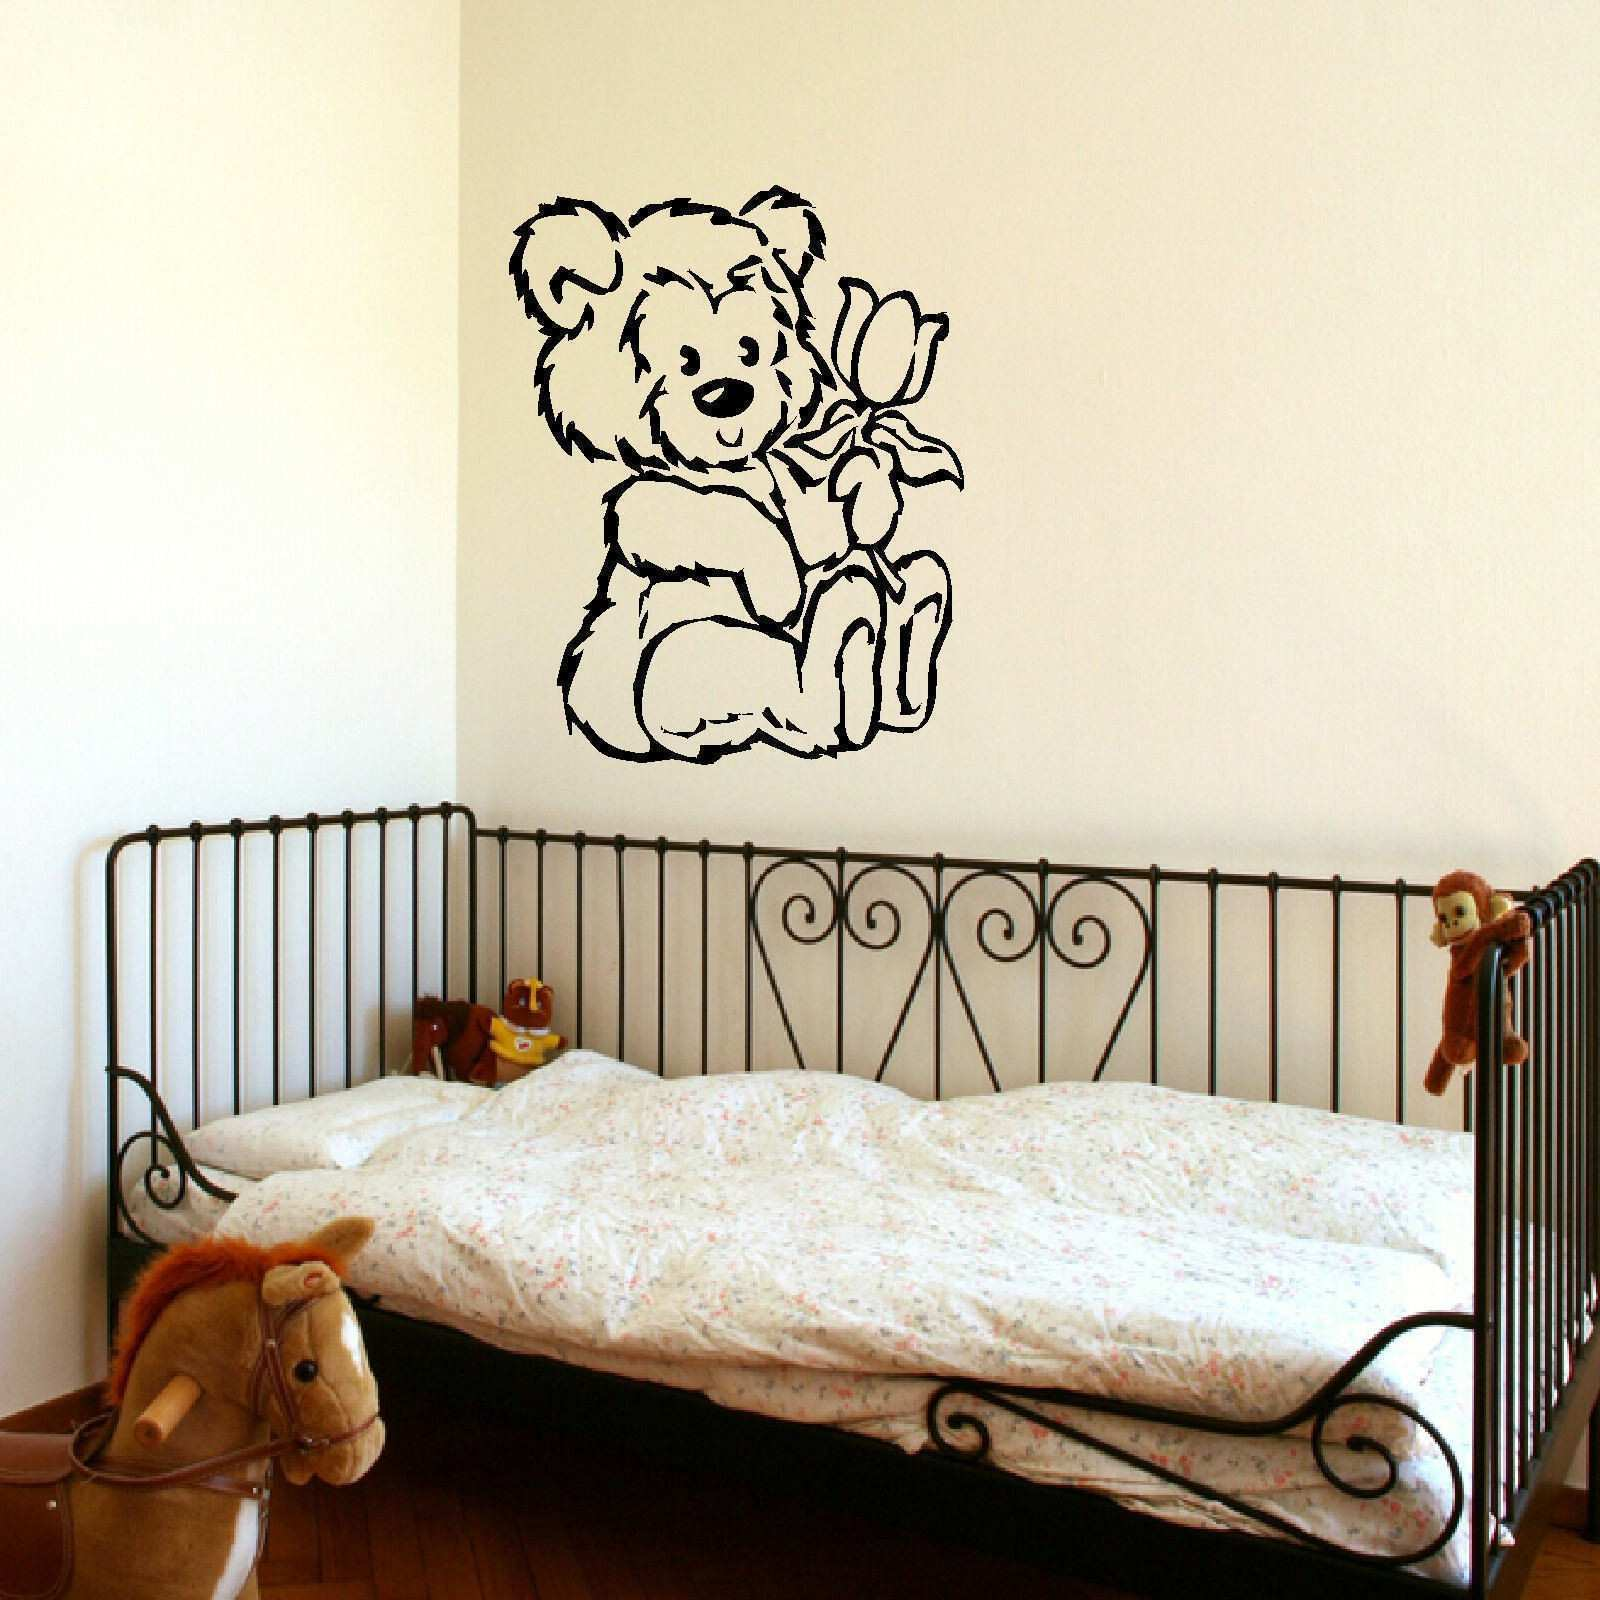 D309 Nursery Teddy Bear Baby Wall Art Stencil Sticker Transfer